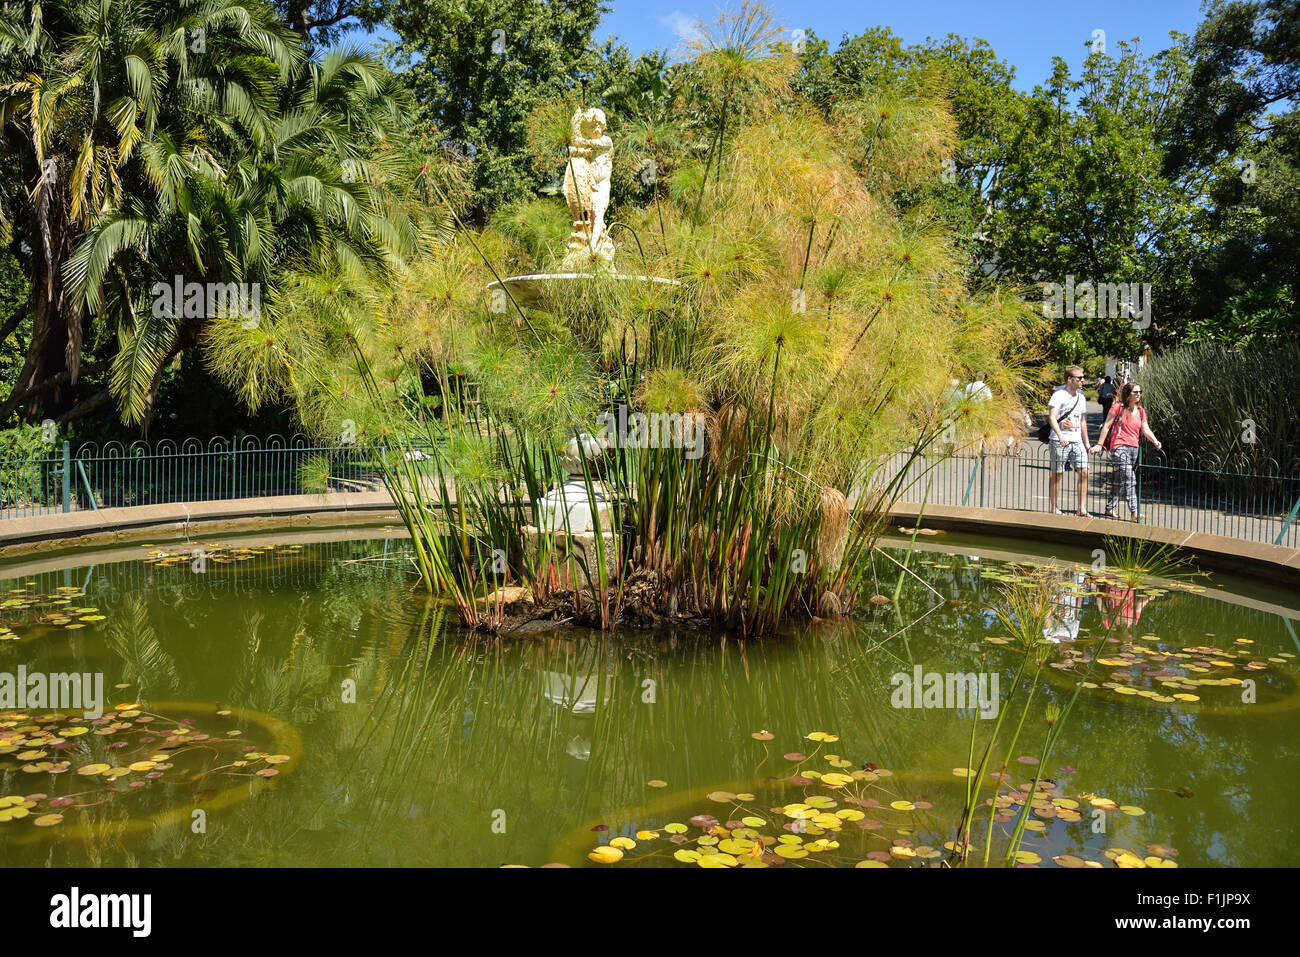 Thorne Fountain in The Public Garden, The Company's Garden, Cape Town, Western Cape Province, Republic of South - Stock Image